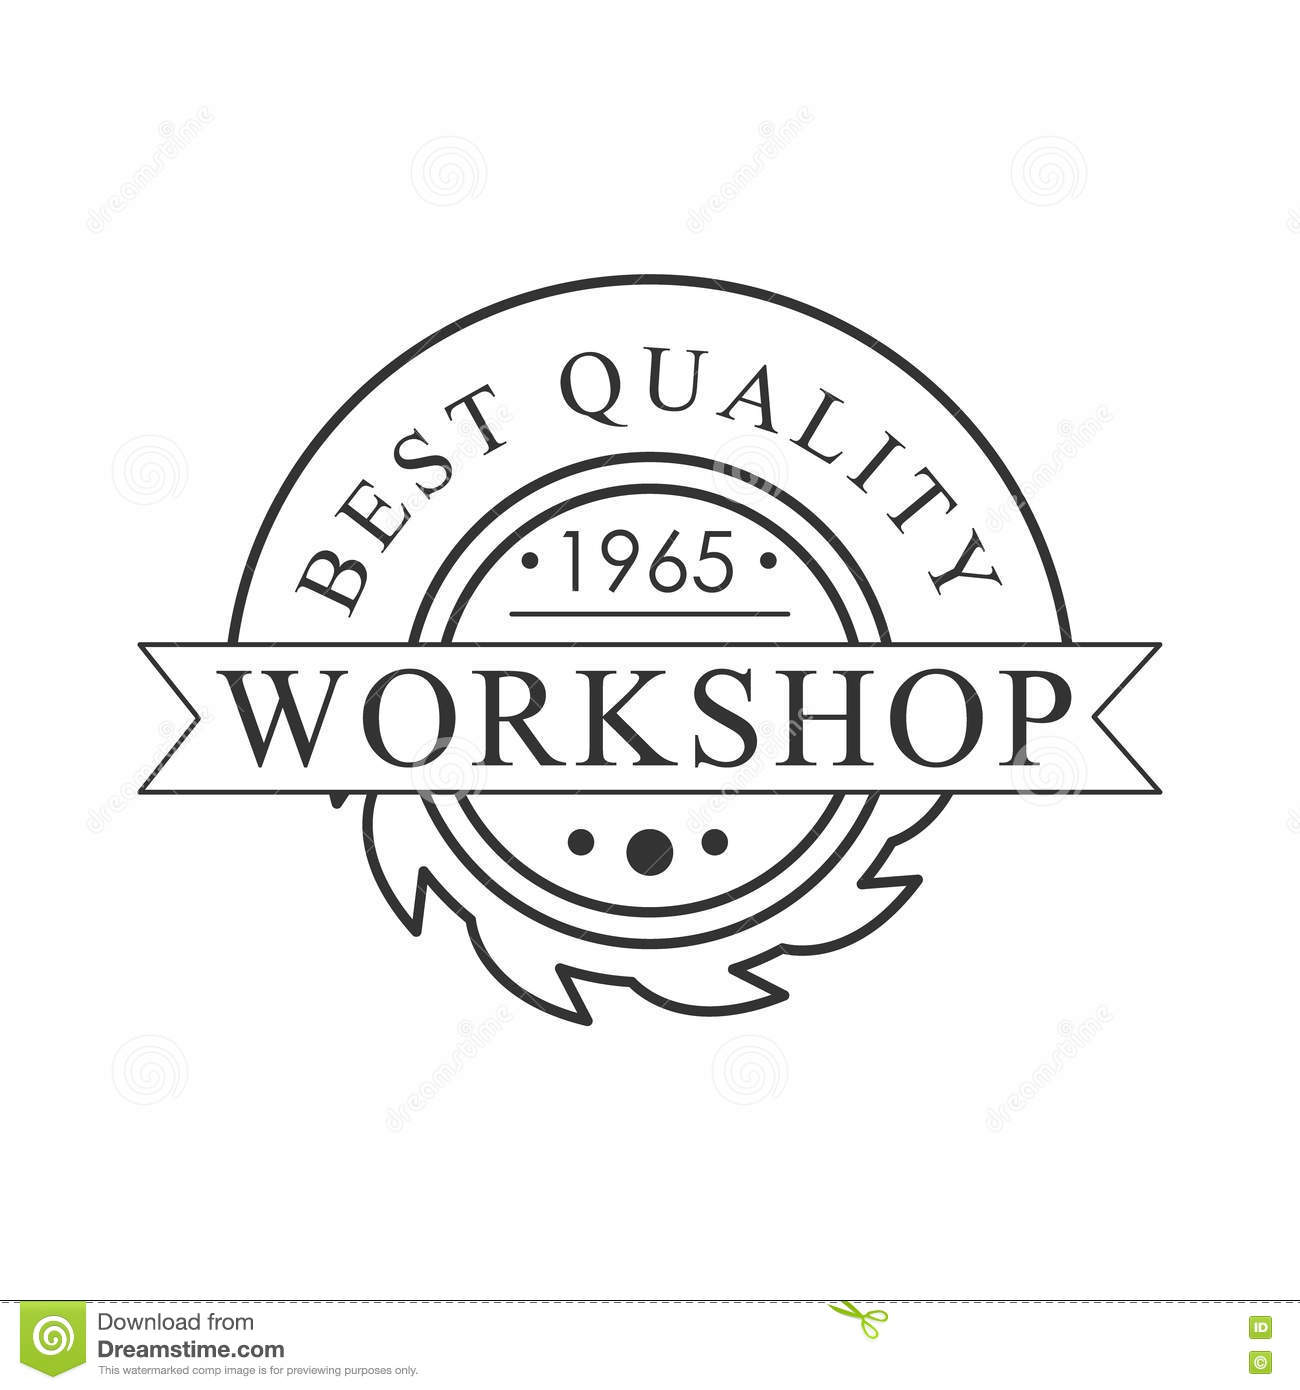 buzz saw premium quality wood workshop monochrome retro stamp vector